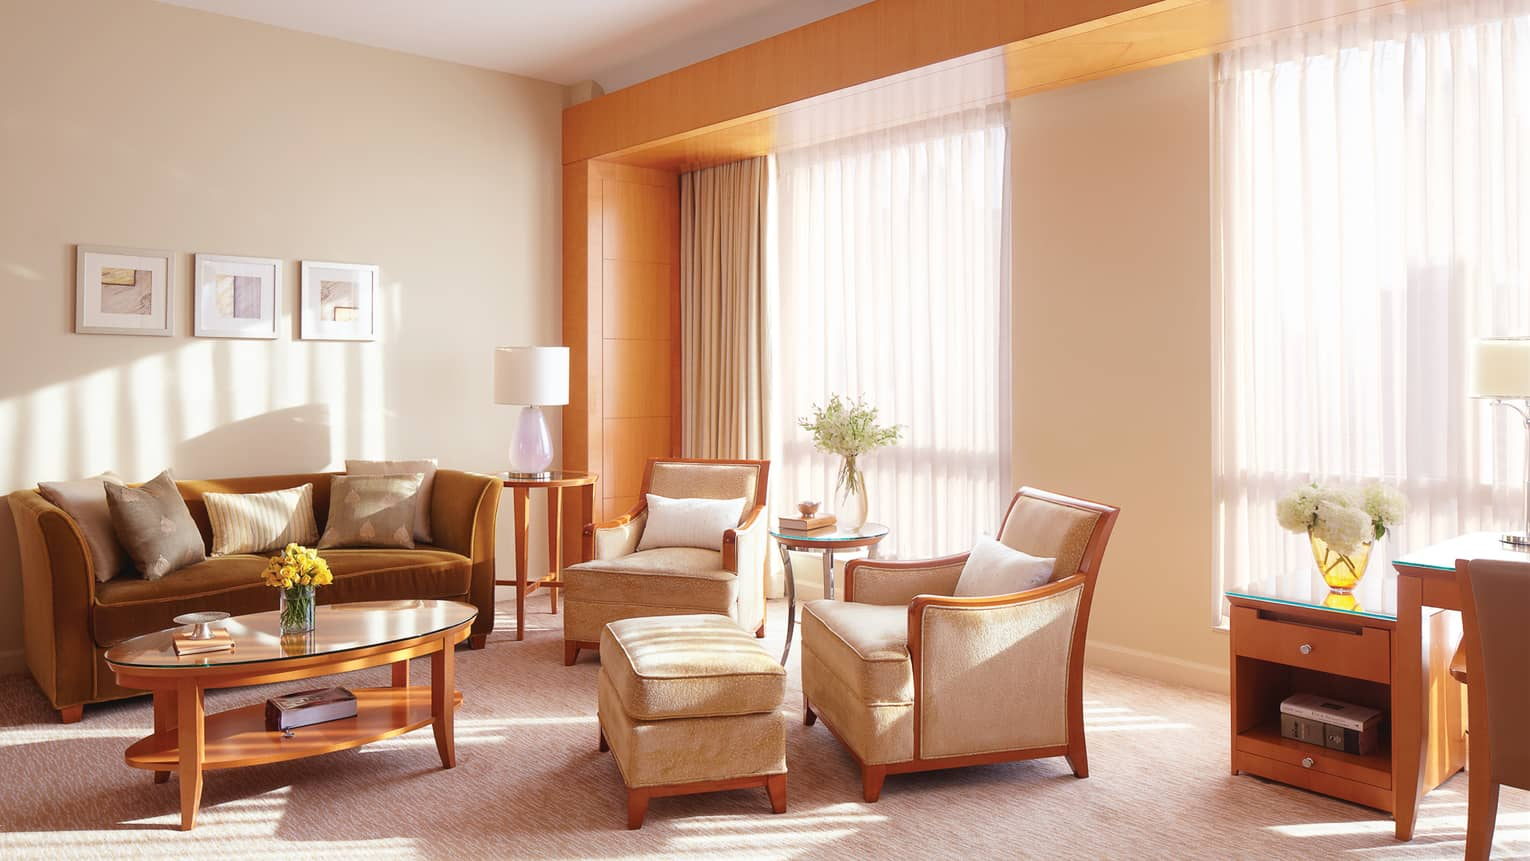 Executive Suite beige velvet armchairs, bronze sofa, table by large windows, sheer curtains